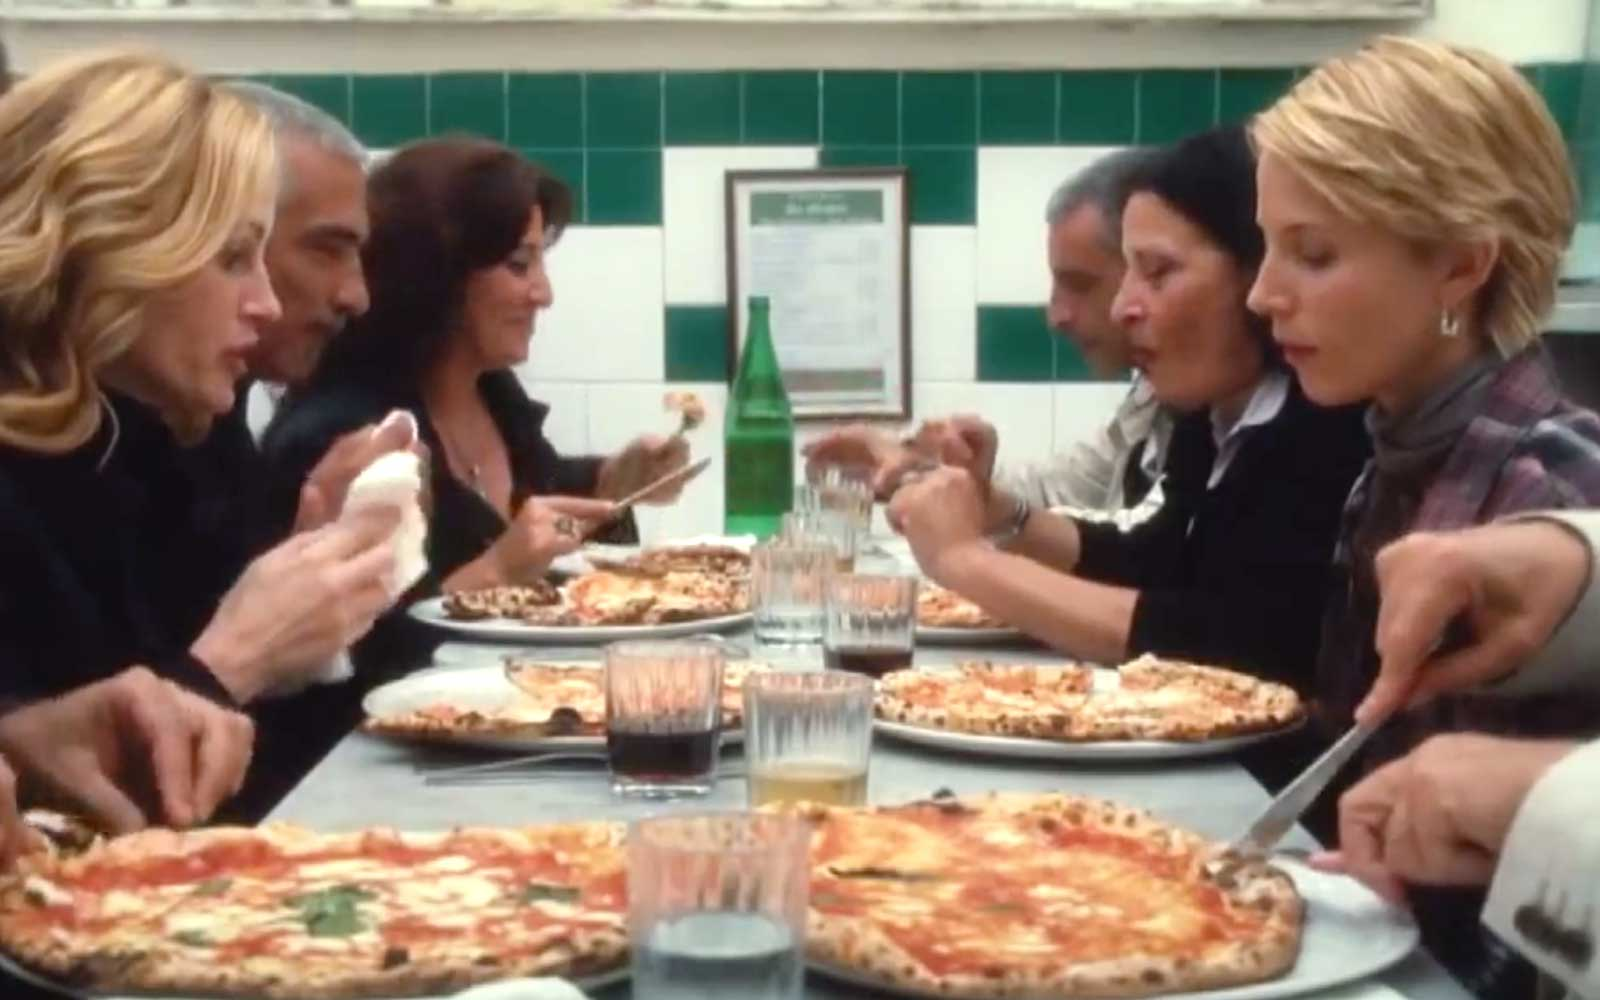 Pizzeria From Eat Pray Love Opens in London